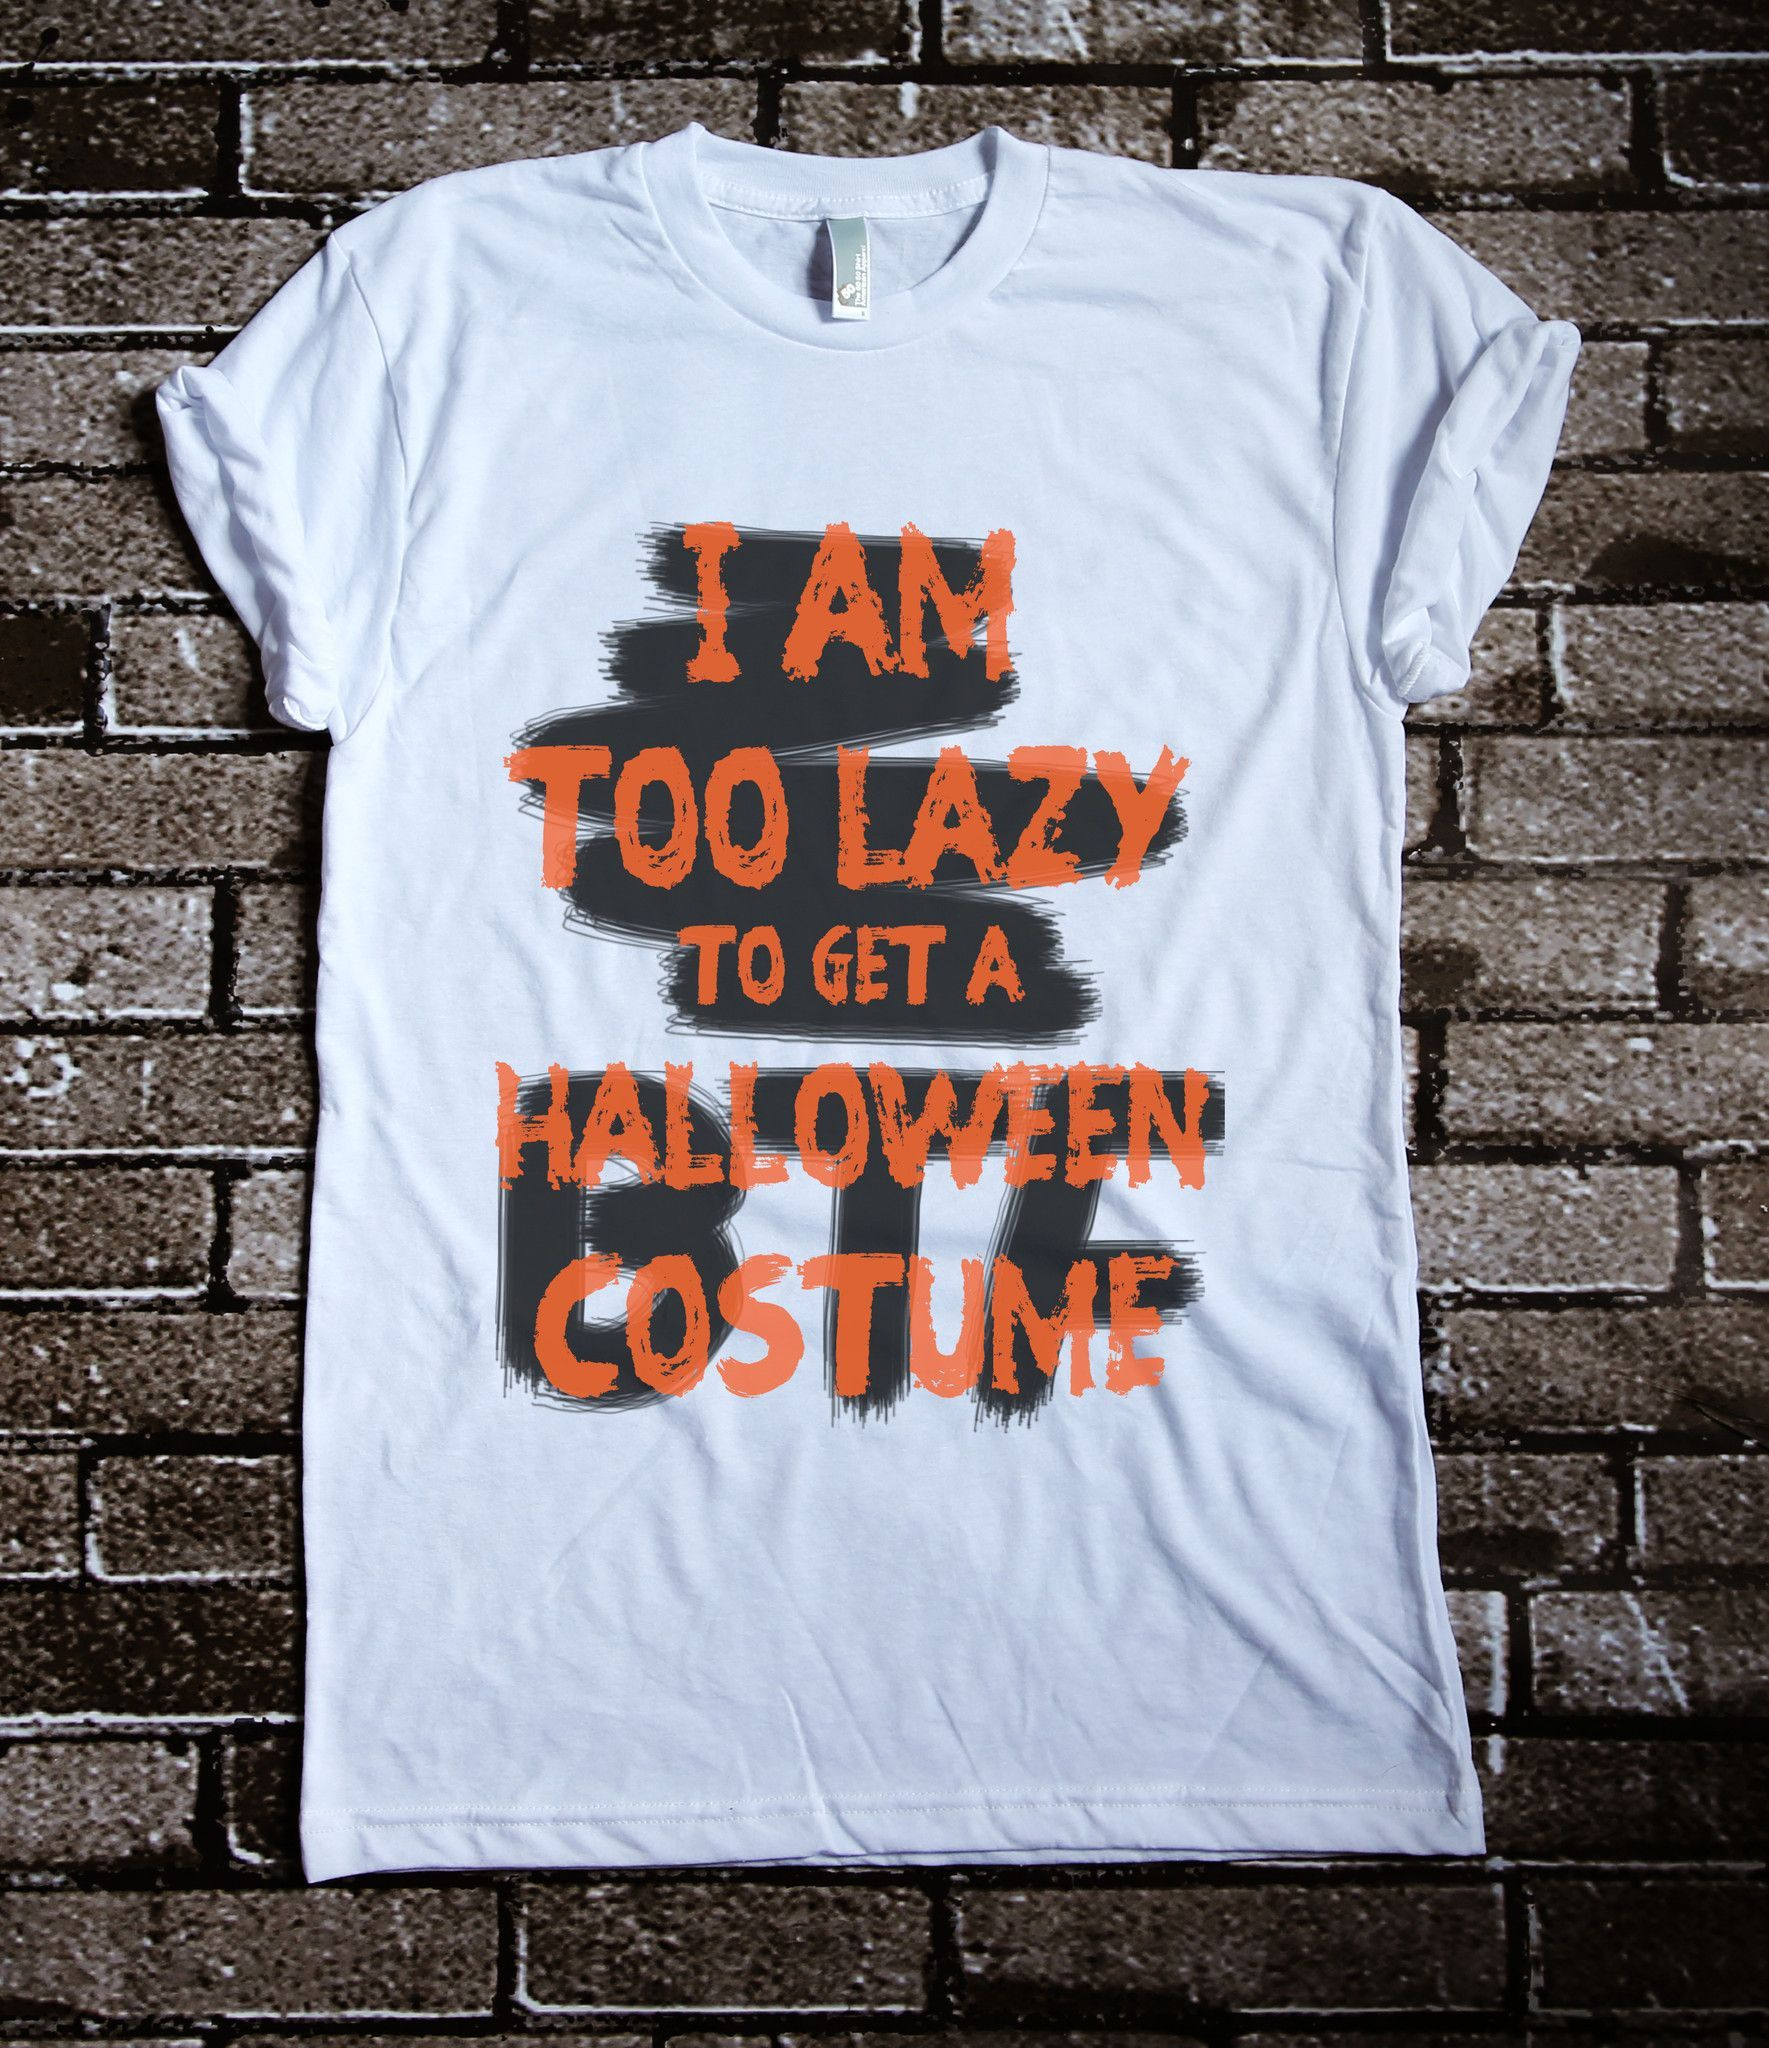 Now Brooklyn T Factory is providing quality T-shirts from American Apparel!* Lazy people's Halloween costume! on American Apparel Feeling lazy to get halloween costume? We have solution! wear our funn